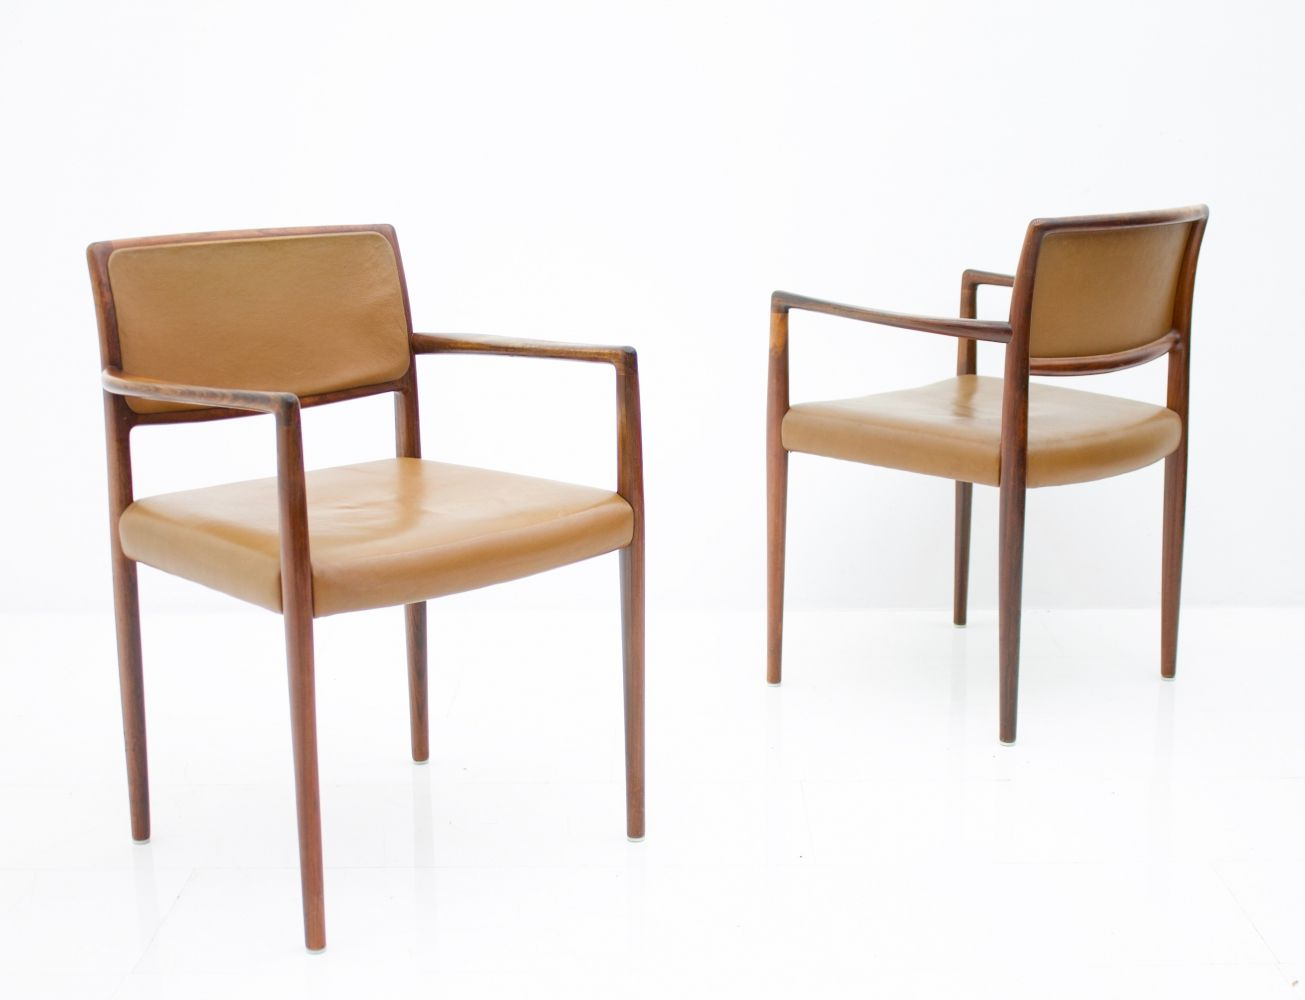 For Sale Pair Of Scandinavian Armchairs In Rosewood Brown Leather 1960s Scandinavian Armchair Armchair Brown Leather